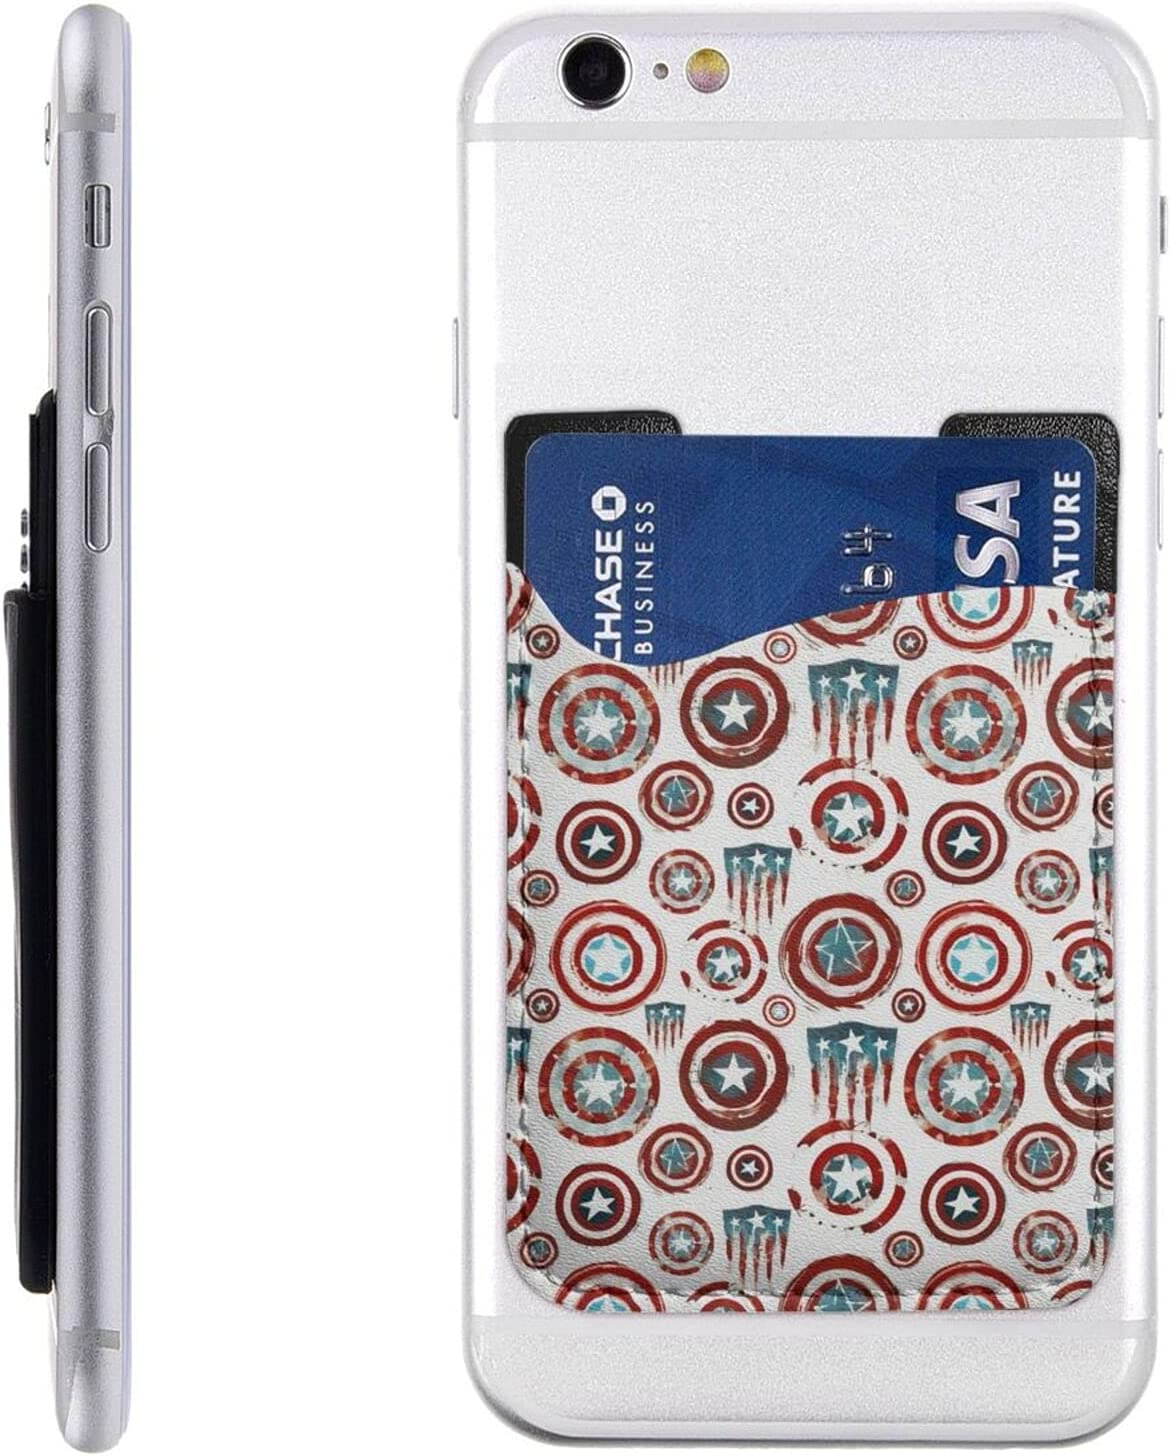 Mobile Phone Card Max 62% OFF Holder Max 85% OFF Adhesive Walle Cell On Stick